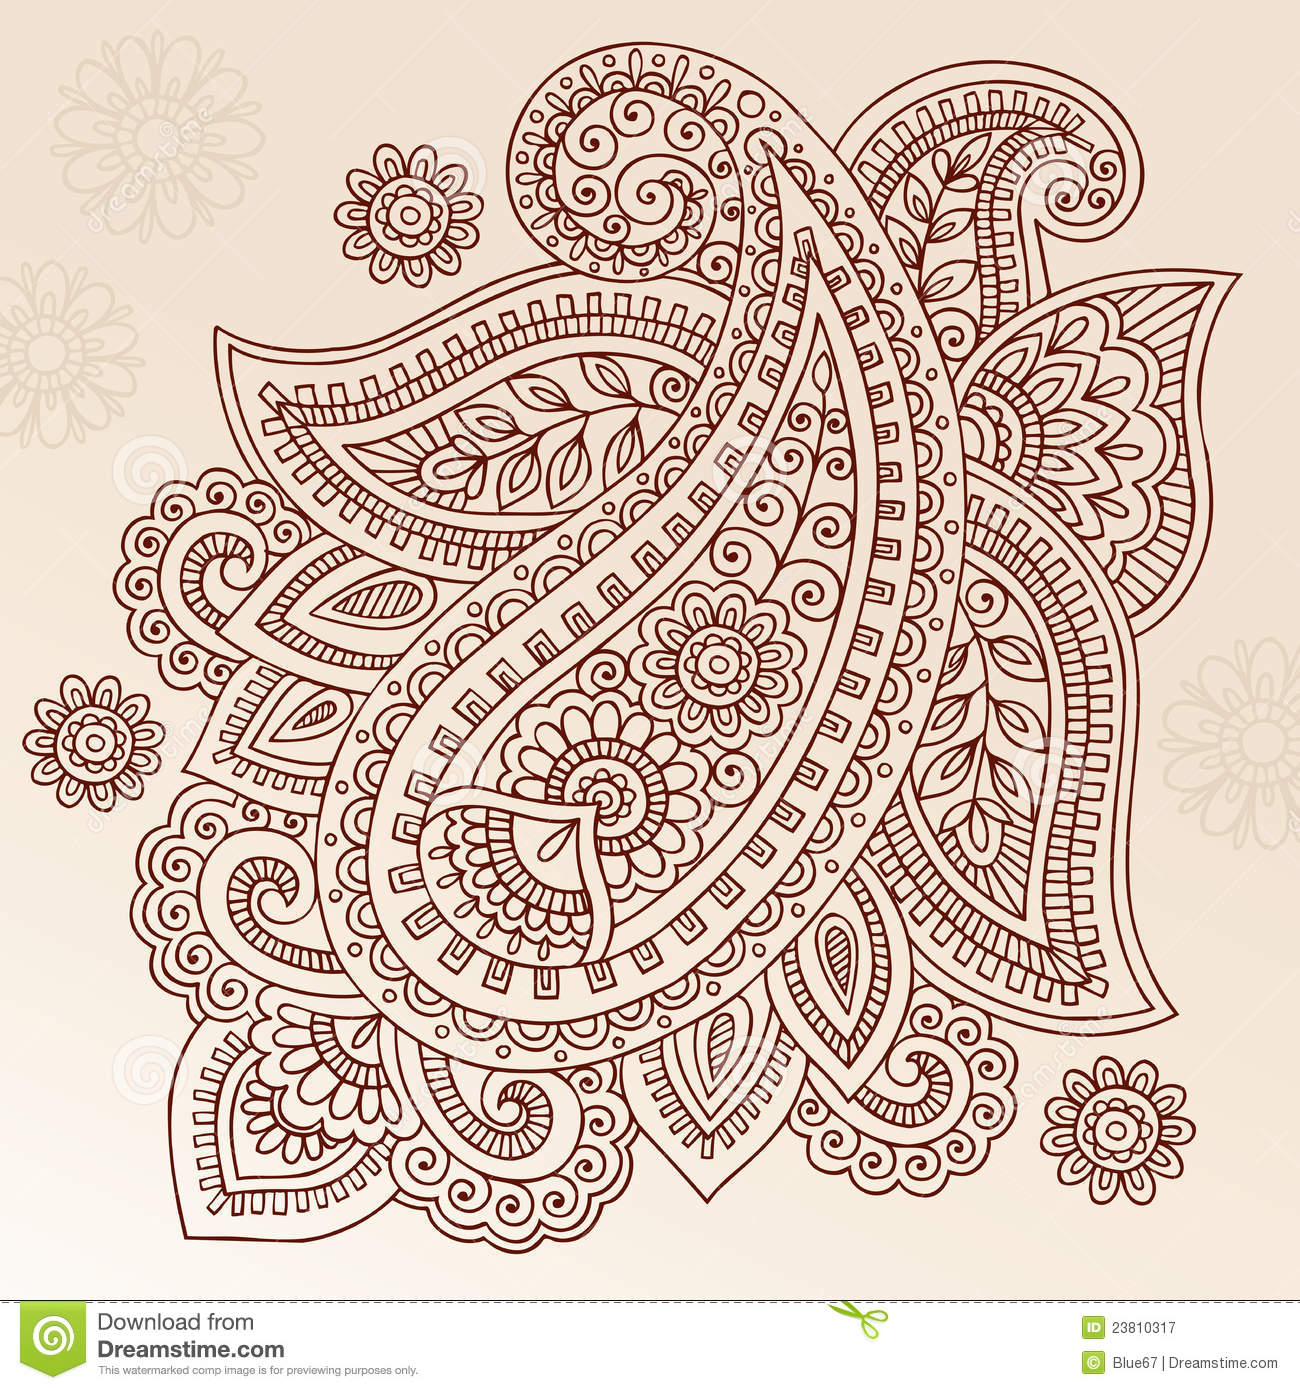 2c32419fb Henna Tattoo Flower Paisley Doodle Vector Design Stock Vector ...